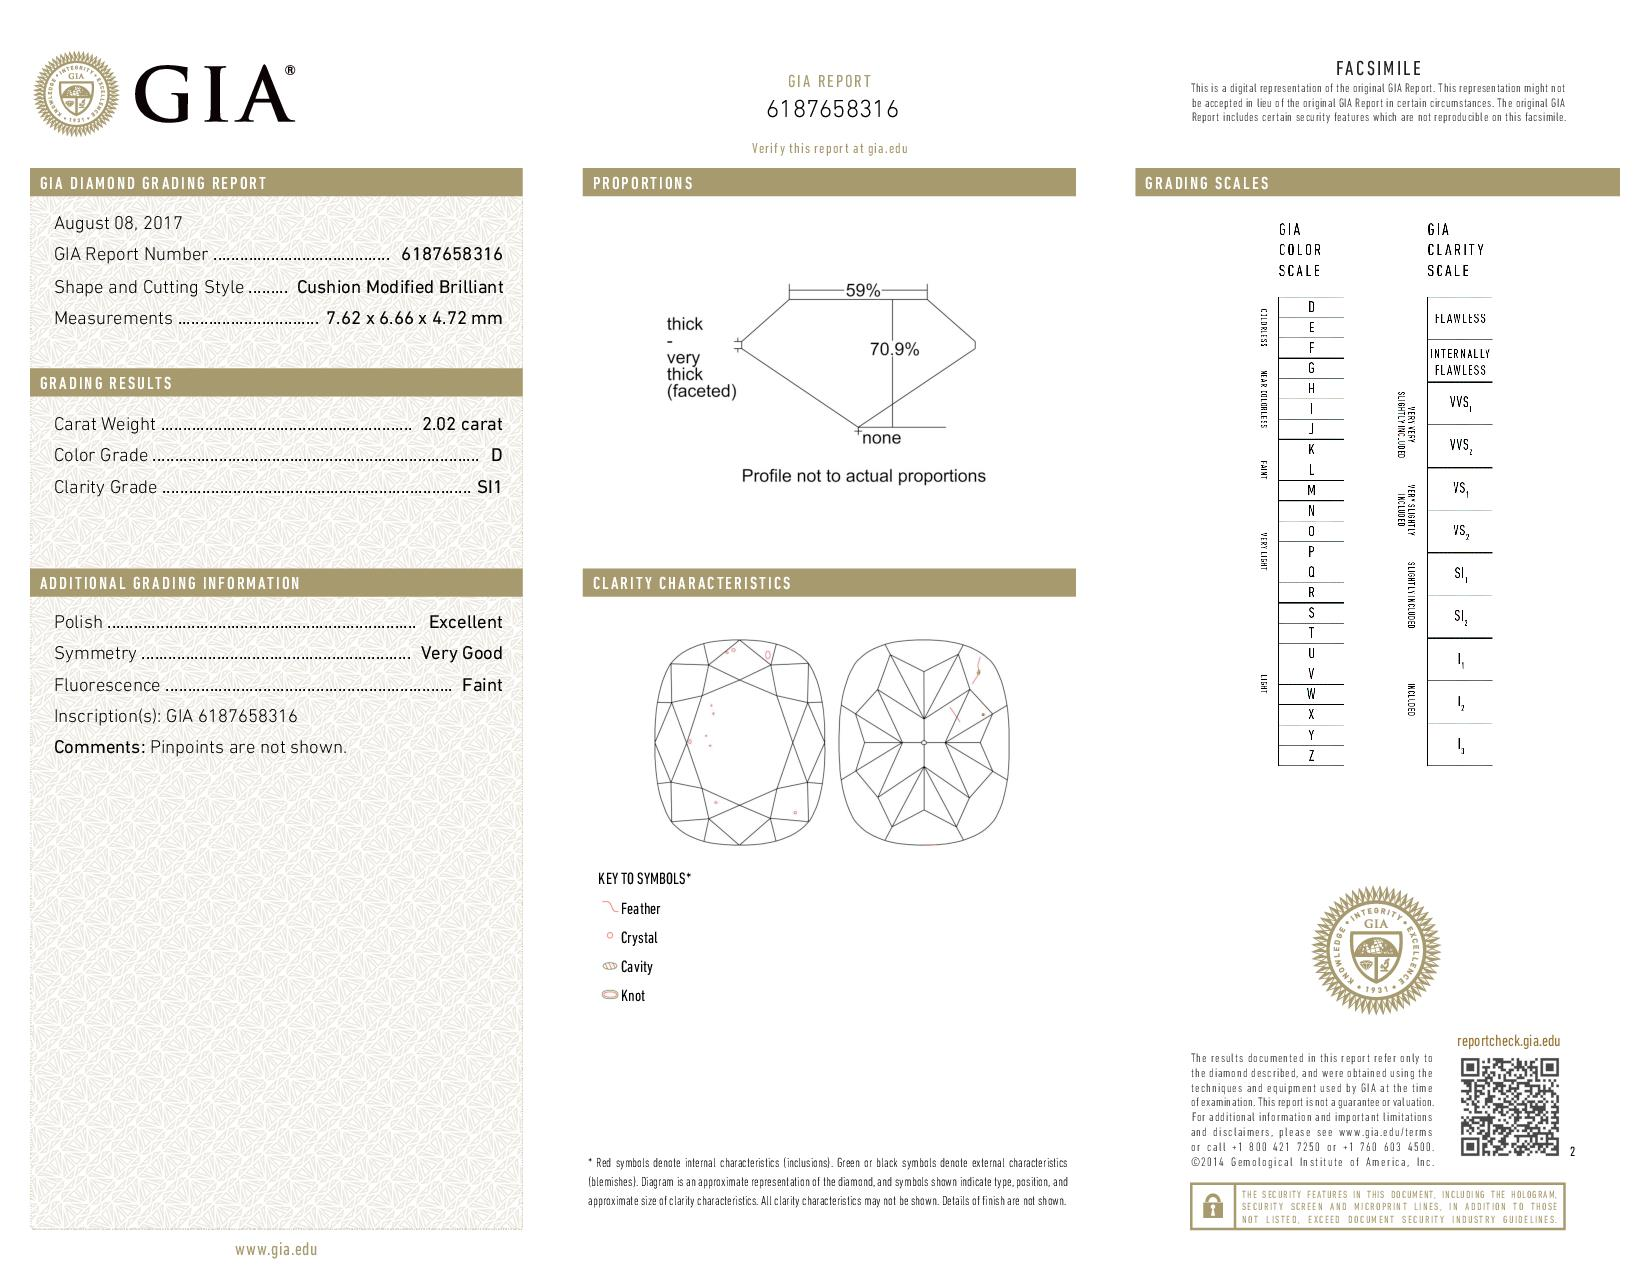 This is a 2.02 carat cushion shape, D color, SI1 clarity natural diamond accompanied by a GIA grading report.